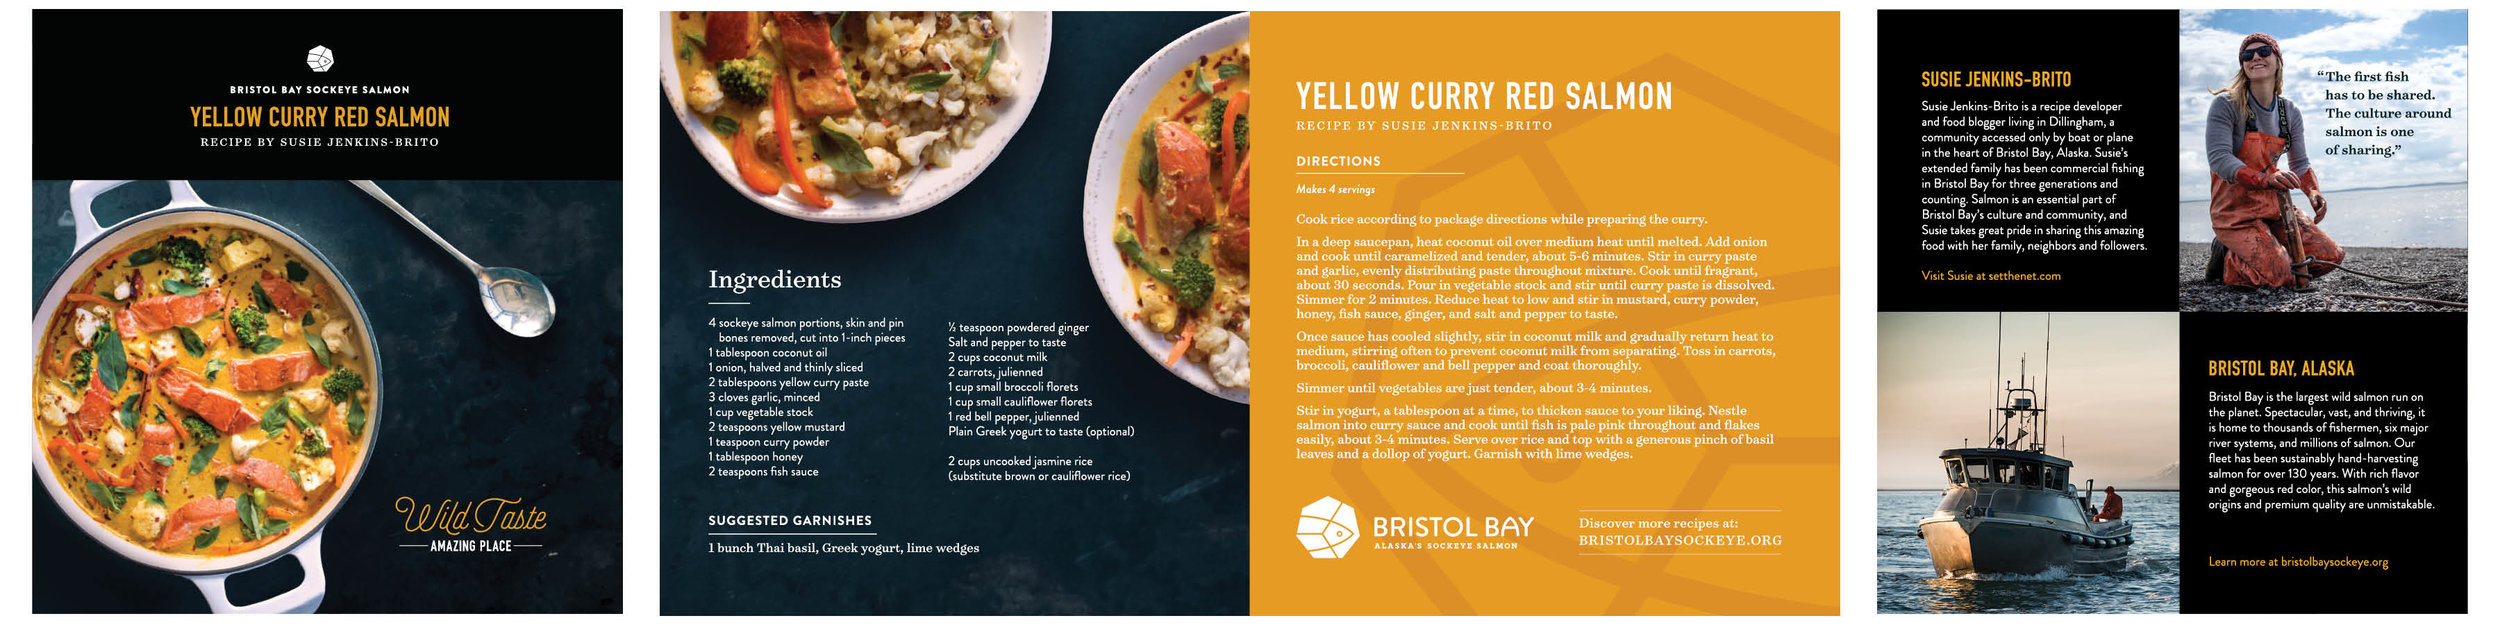 Yellow_Curry_Recipe_Layout.jpg